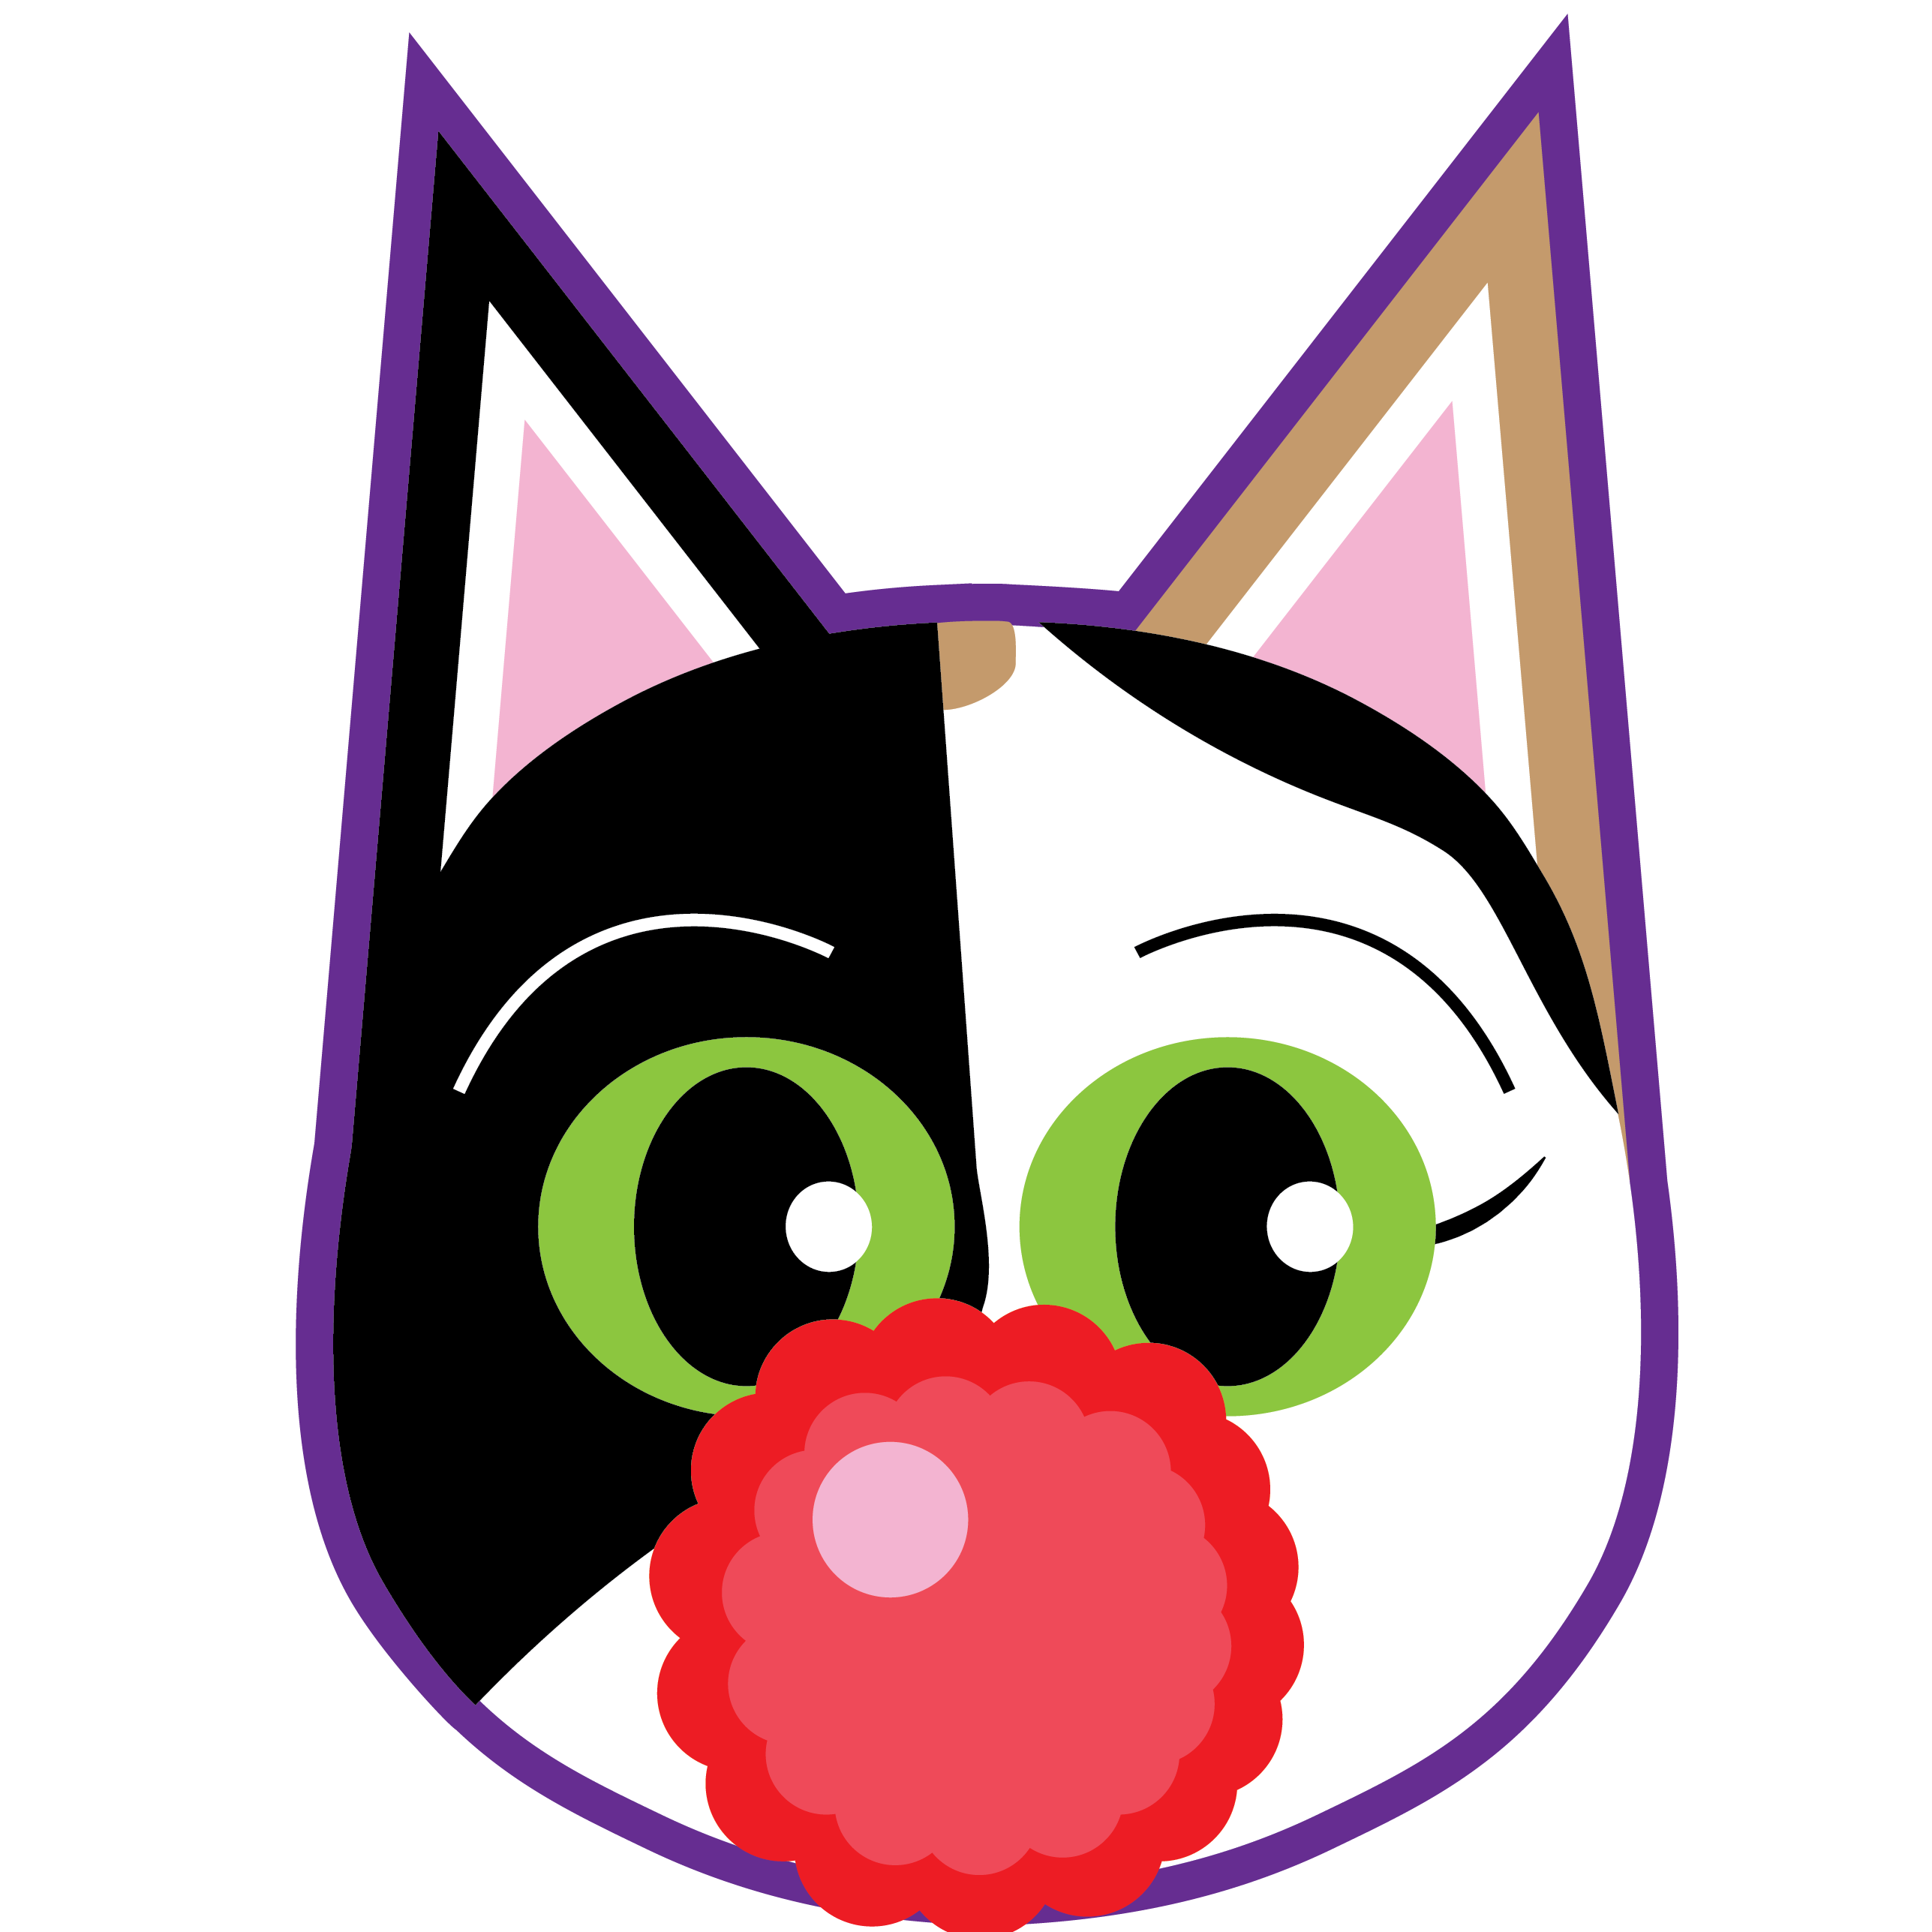 Priscilly Kitty messages sticker-6